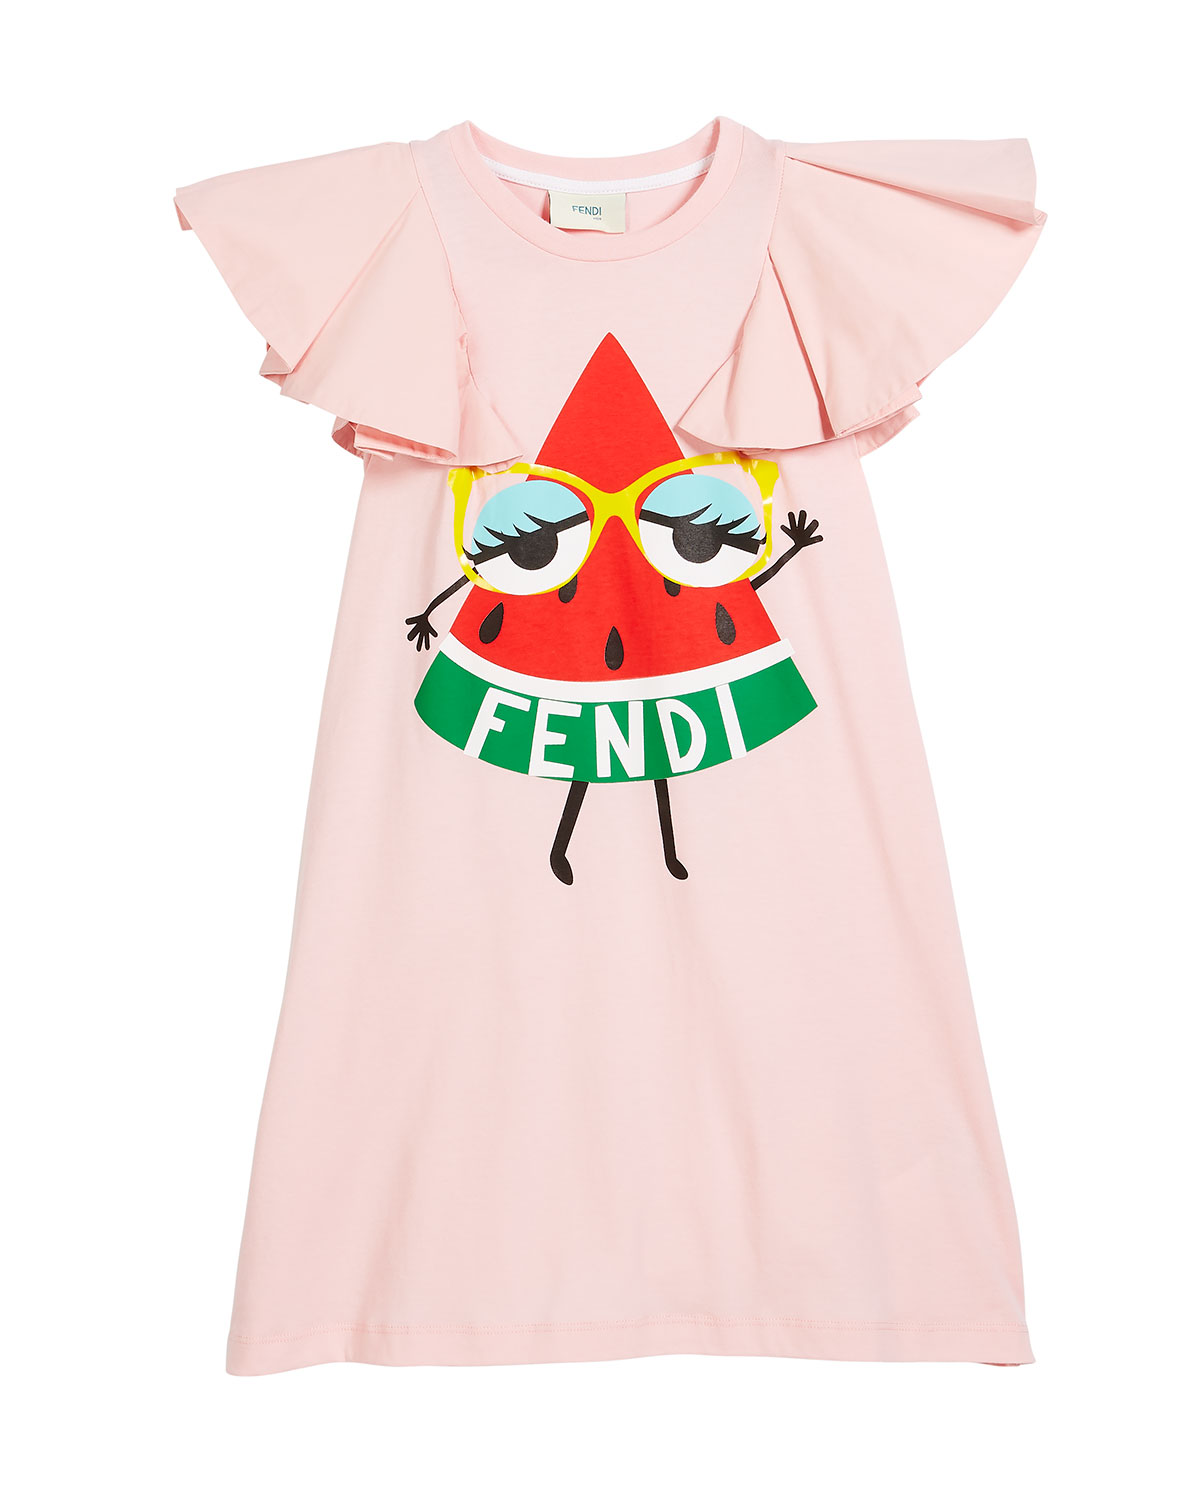 Watermelon Logo Dress, Size 6-8